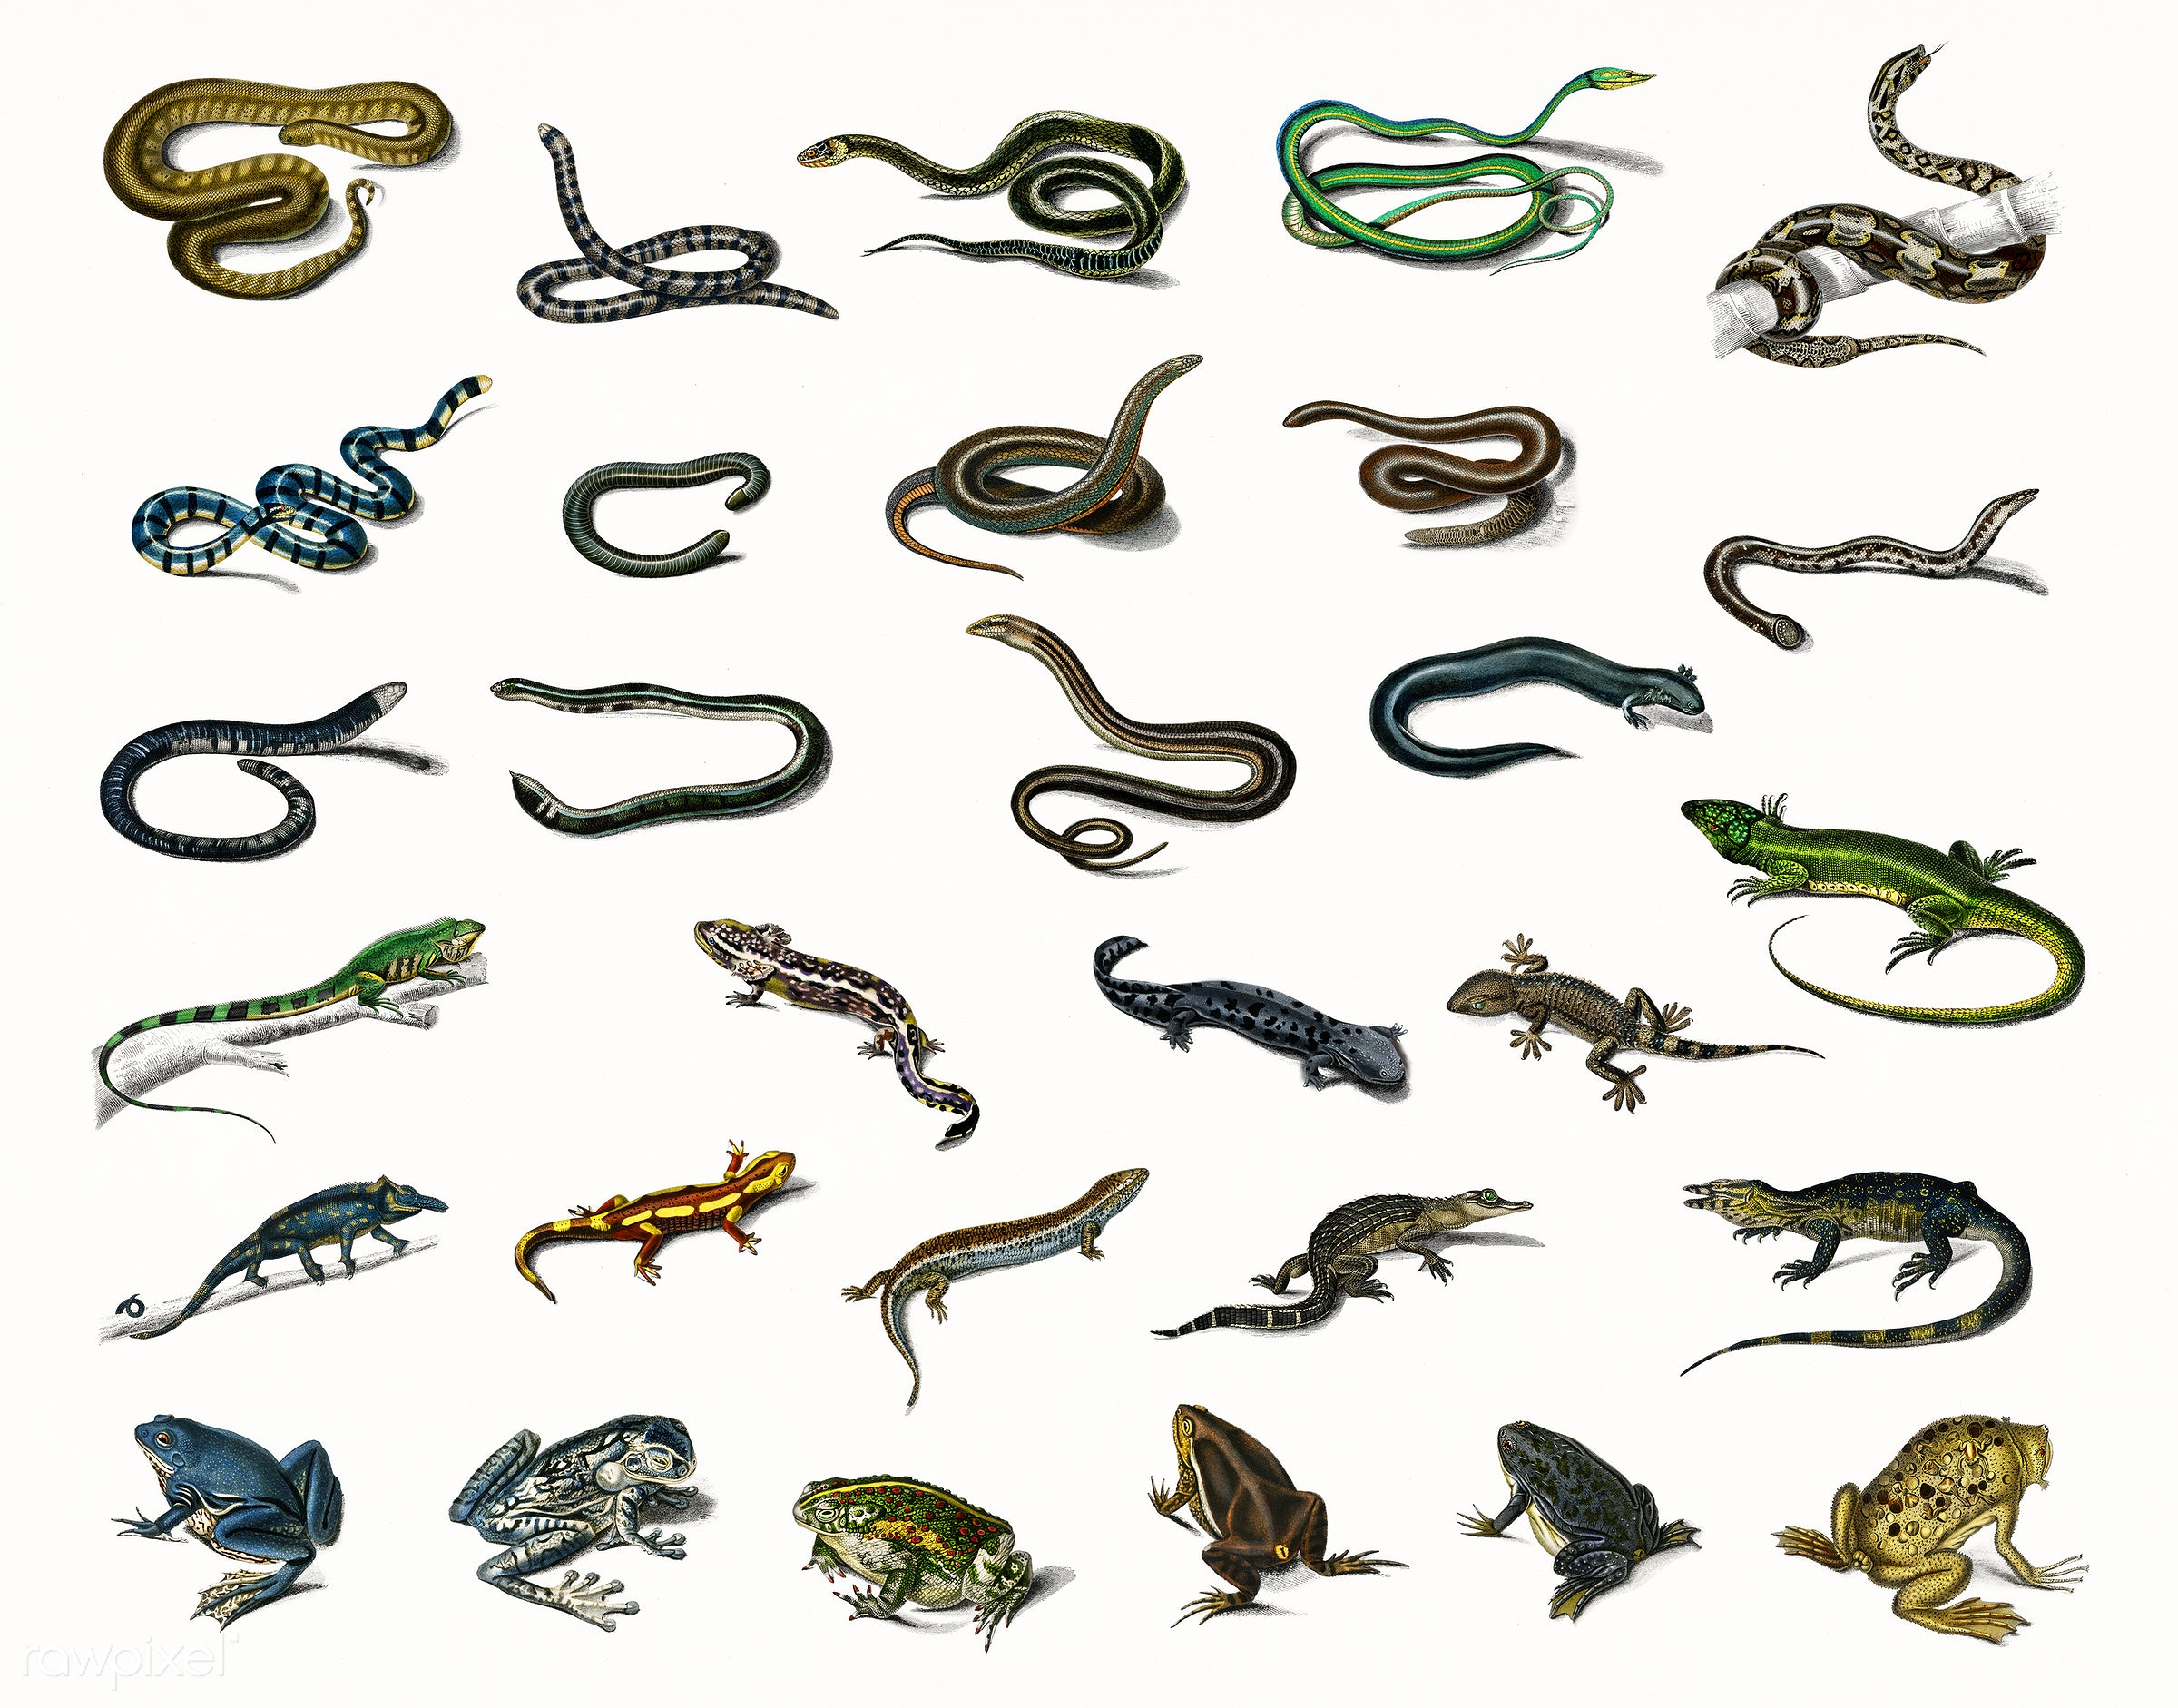 Different types of reptiles illustrated by Charles Dessalines D' Orbigny (1806-1876). Digitally enhanced from our own...